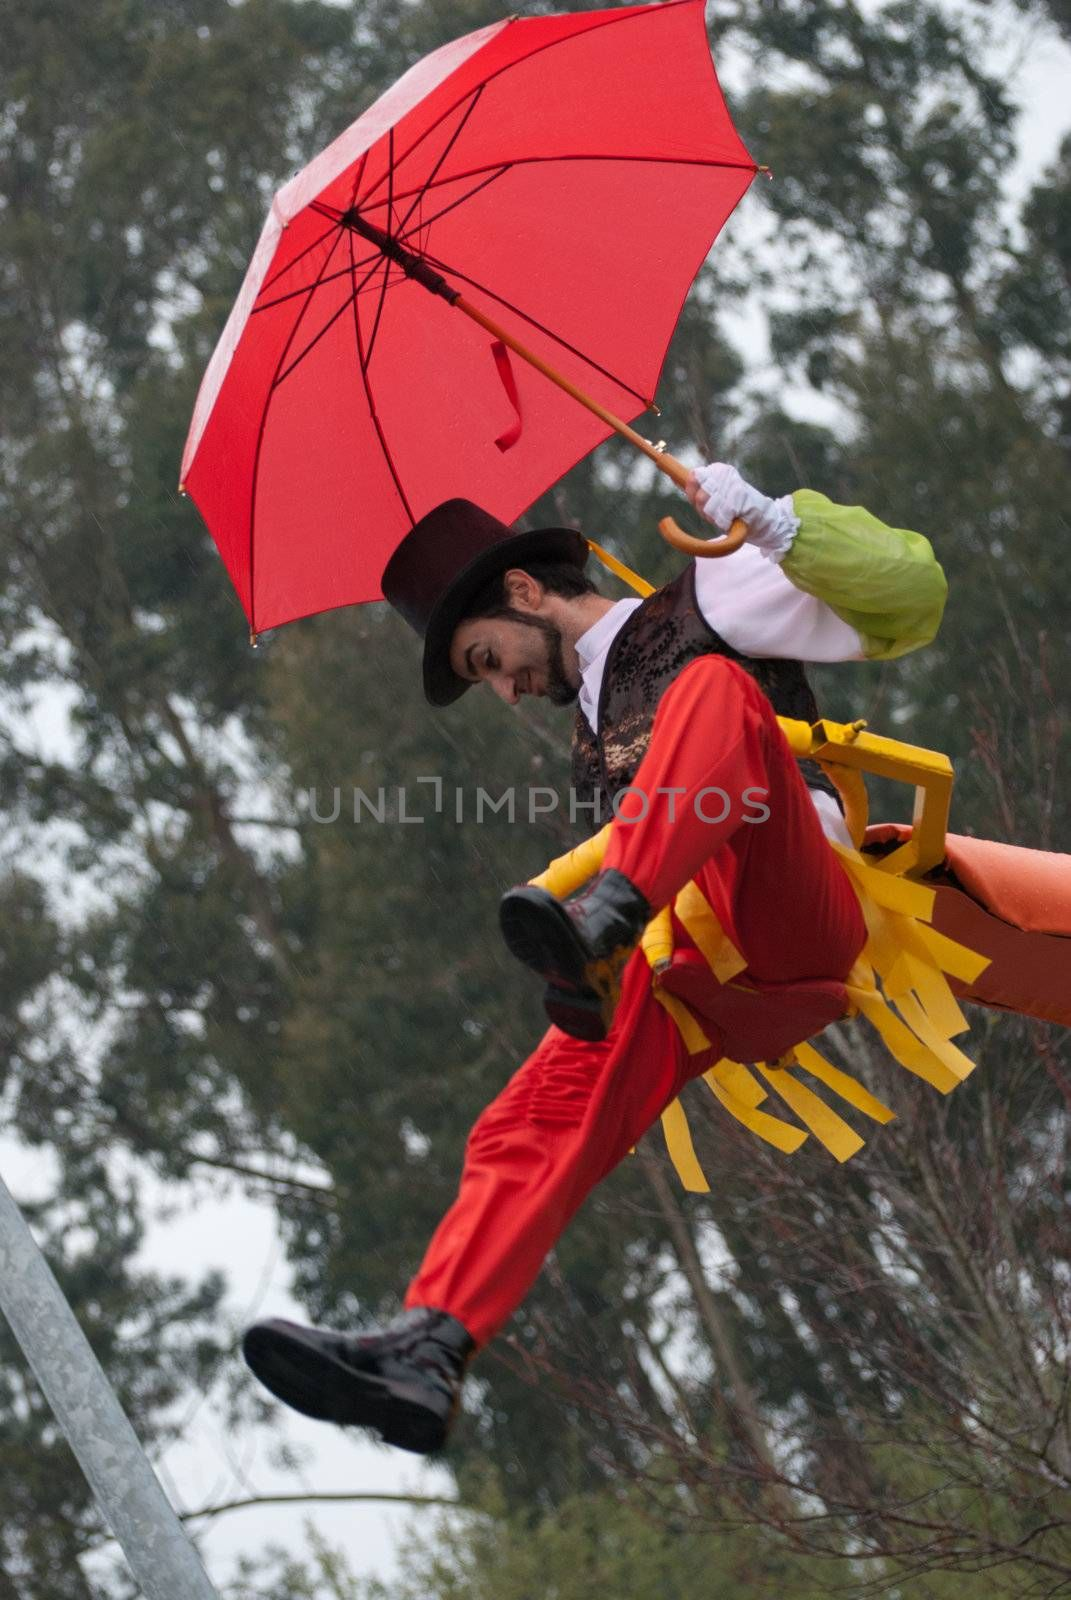 OVAR, PORTUGAL - MARCH 8: Group 'Marados'  during the Carnival Parade on March 8, 2011 in Ovar, Portugal.